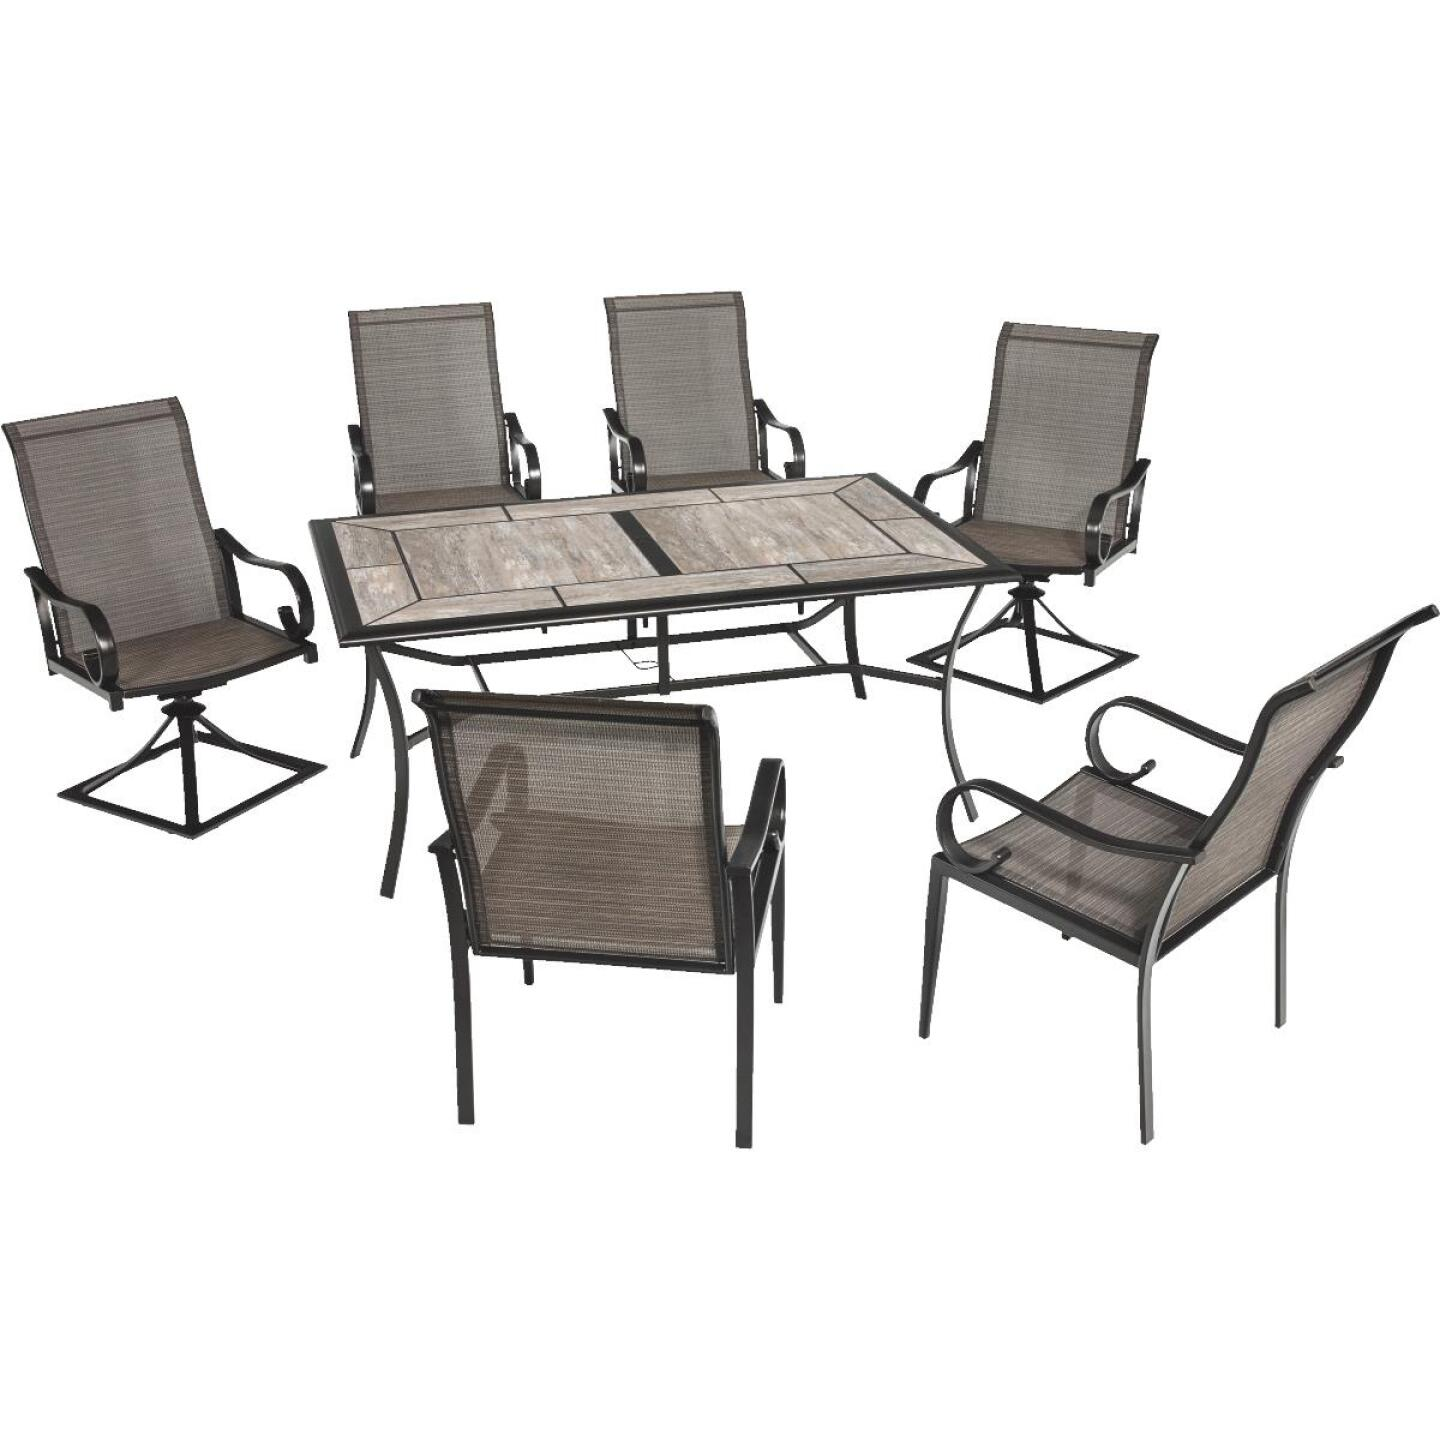 Outdoor Expressions Berkshire 7-Piece Dining Set Image 77